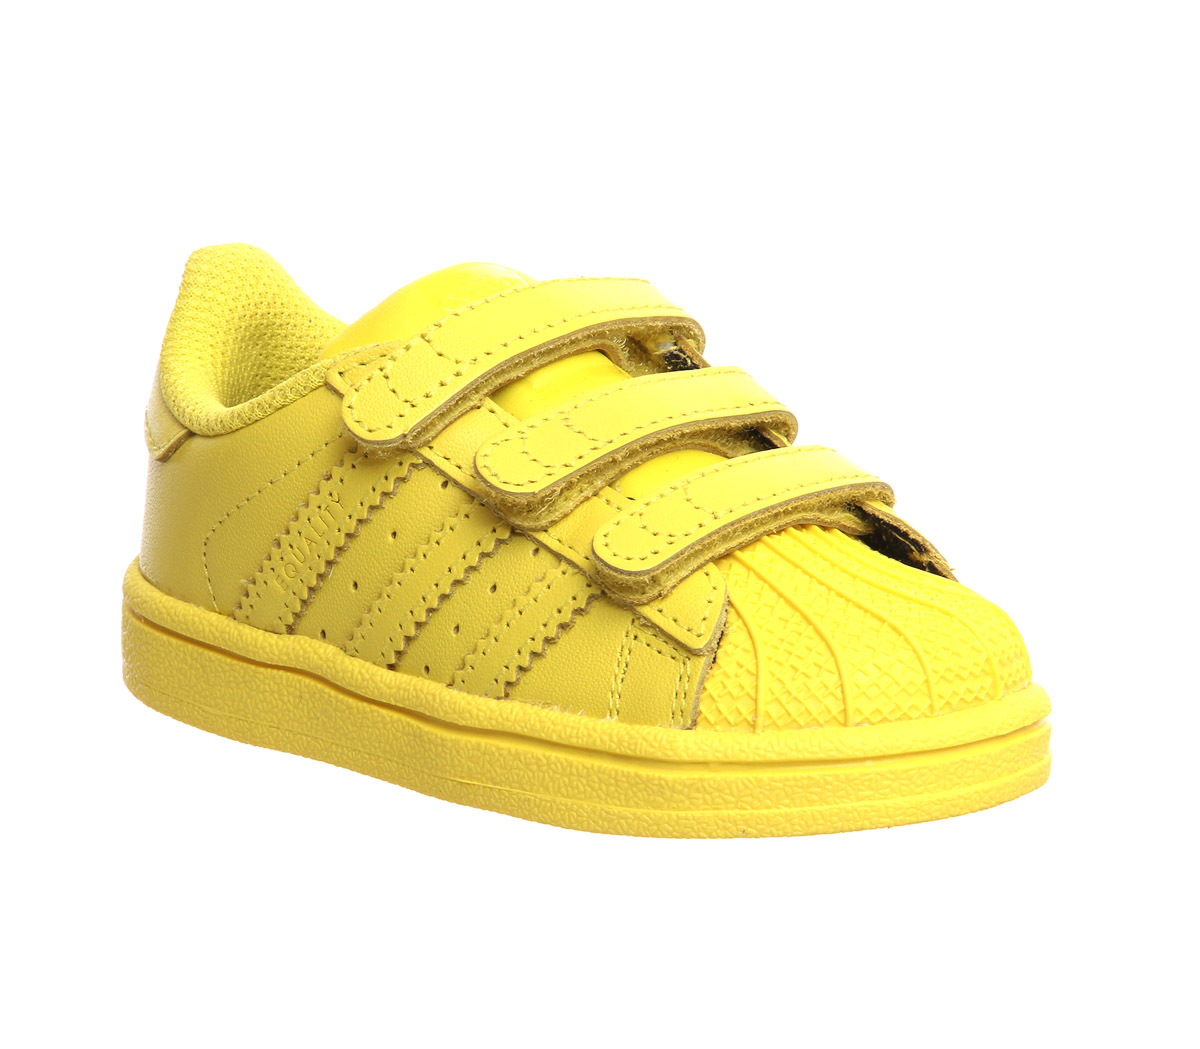 ... kids adidas superstar yellow . f111790e5